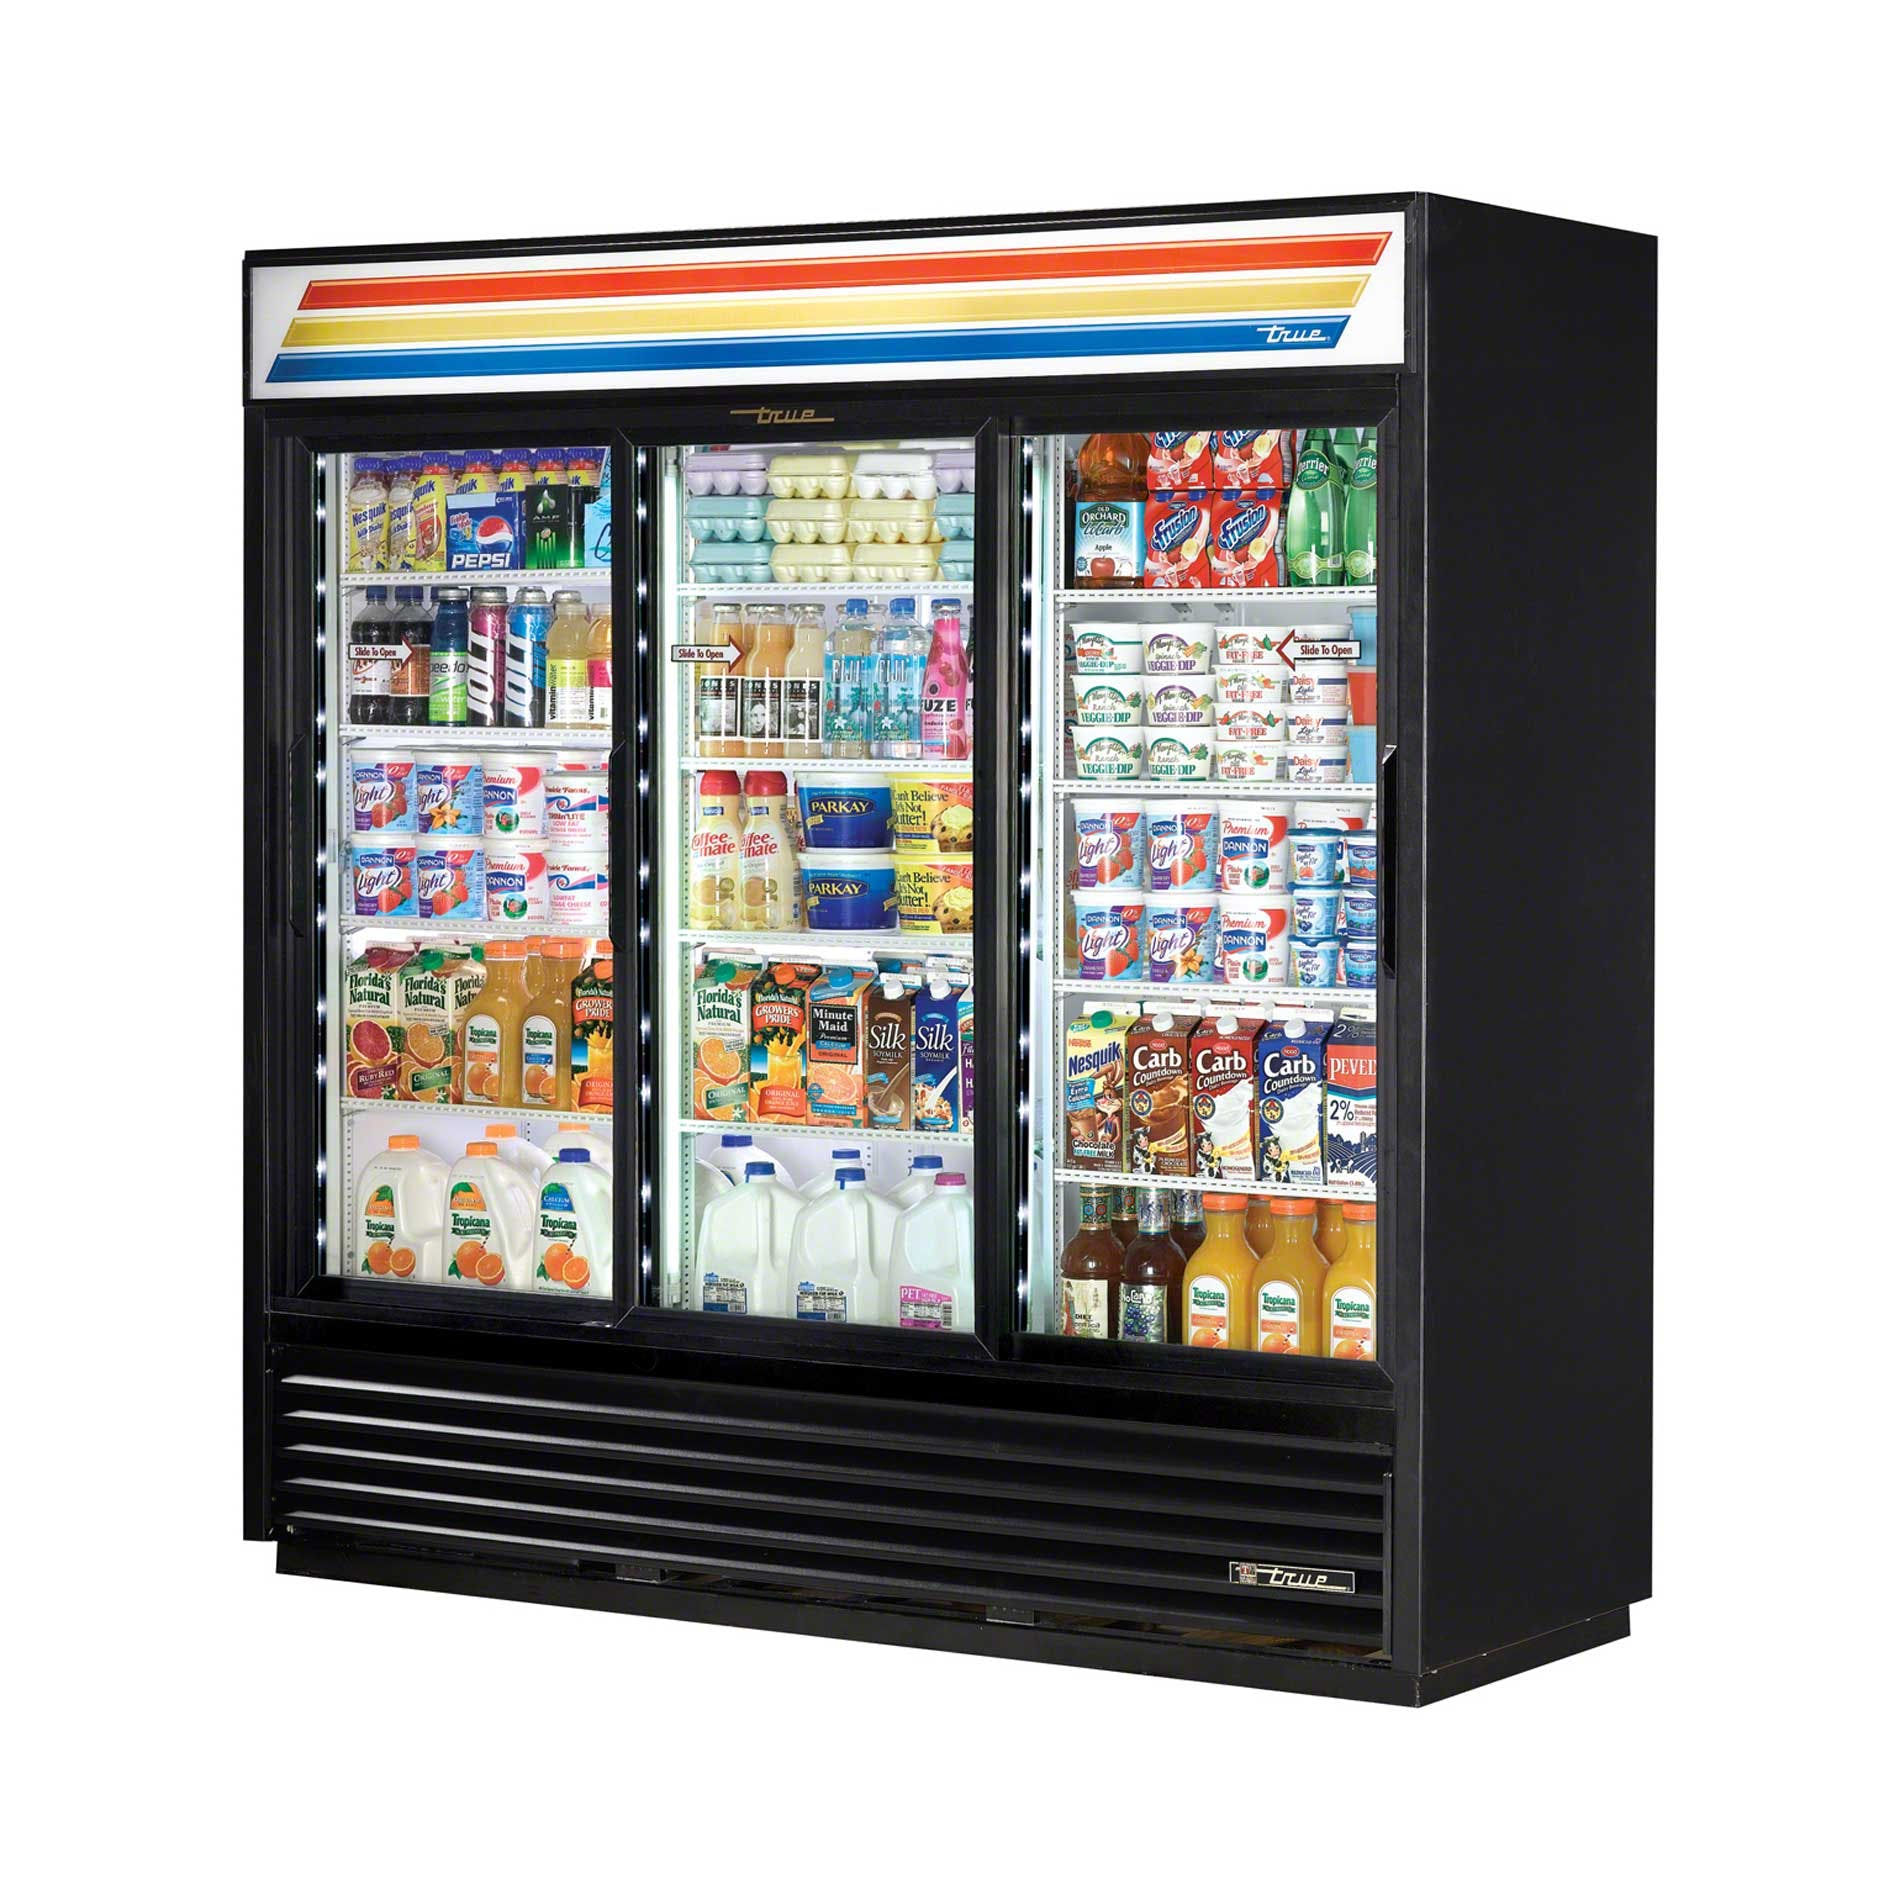 "True - GDM-69-LD 79"" Slide Glass Door Merchandiser Refrigerator LED Commercial refrigerator sold by Food Service Warehouse"